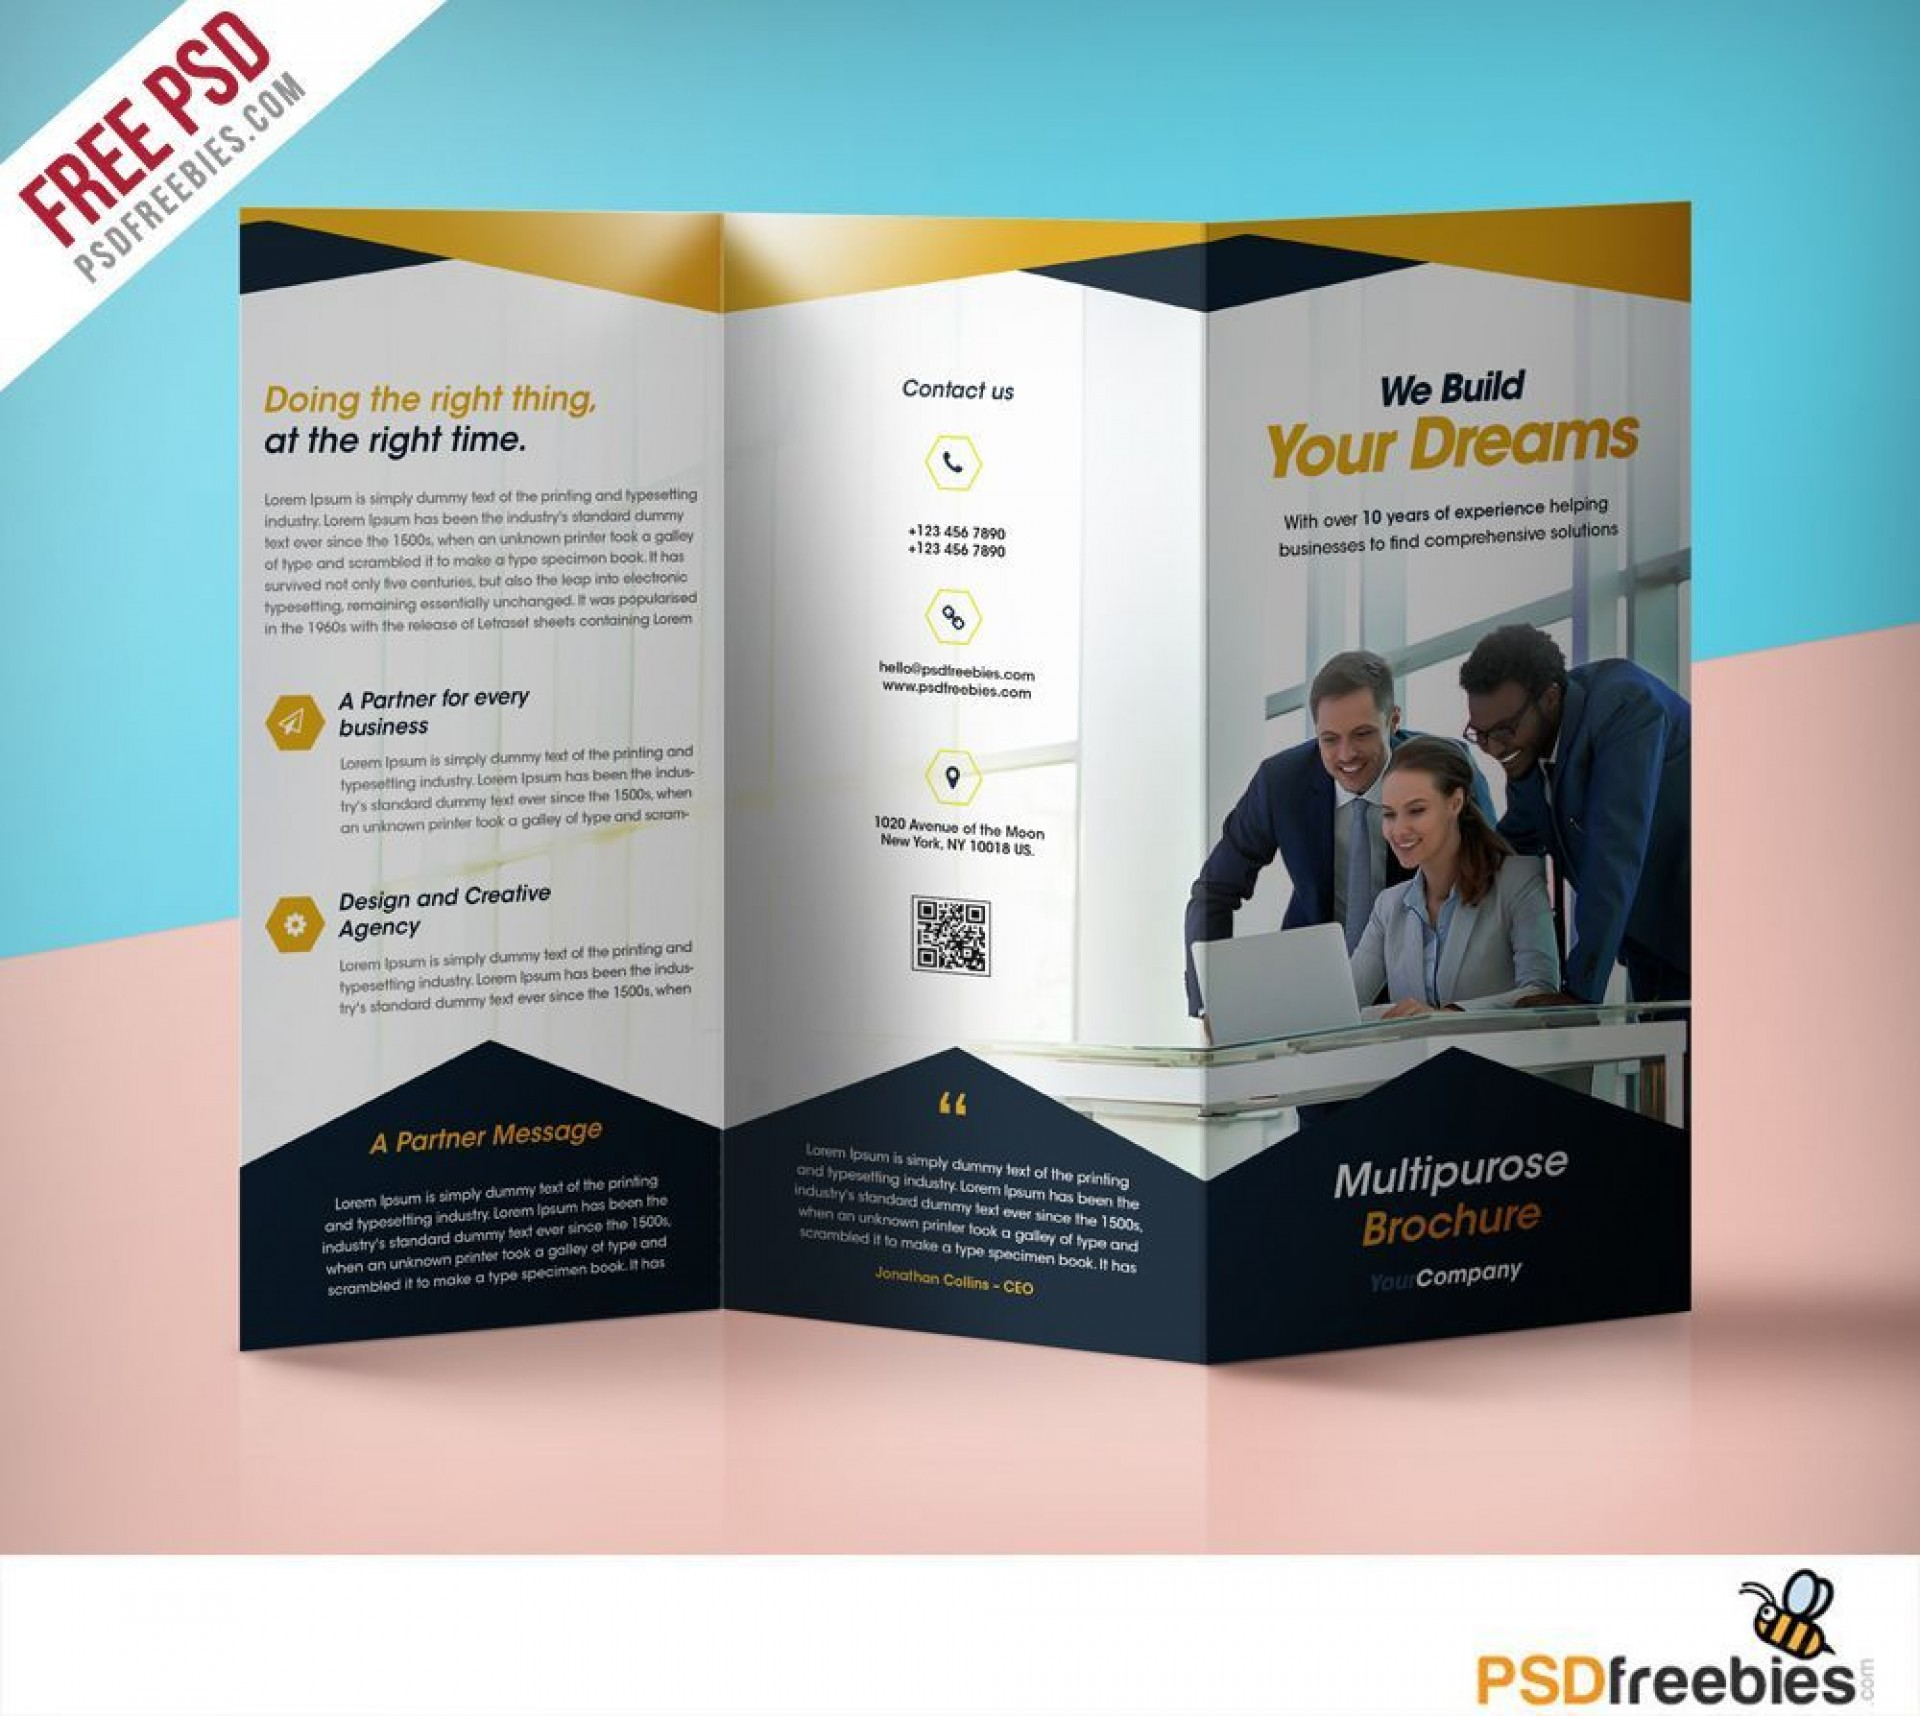 000 Formidable Photoshop Brochure Design Template Free Download High Def 1920